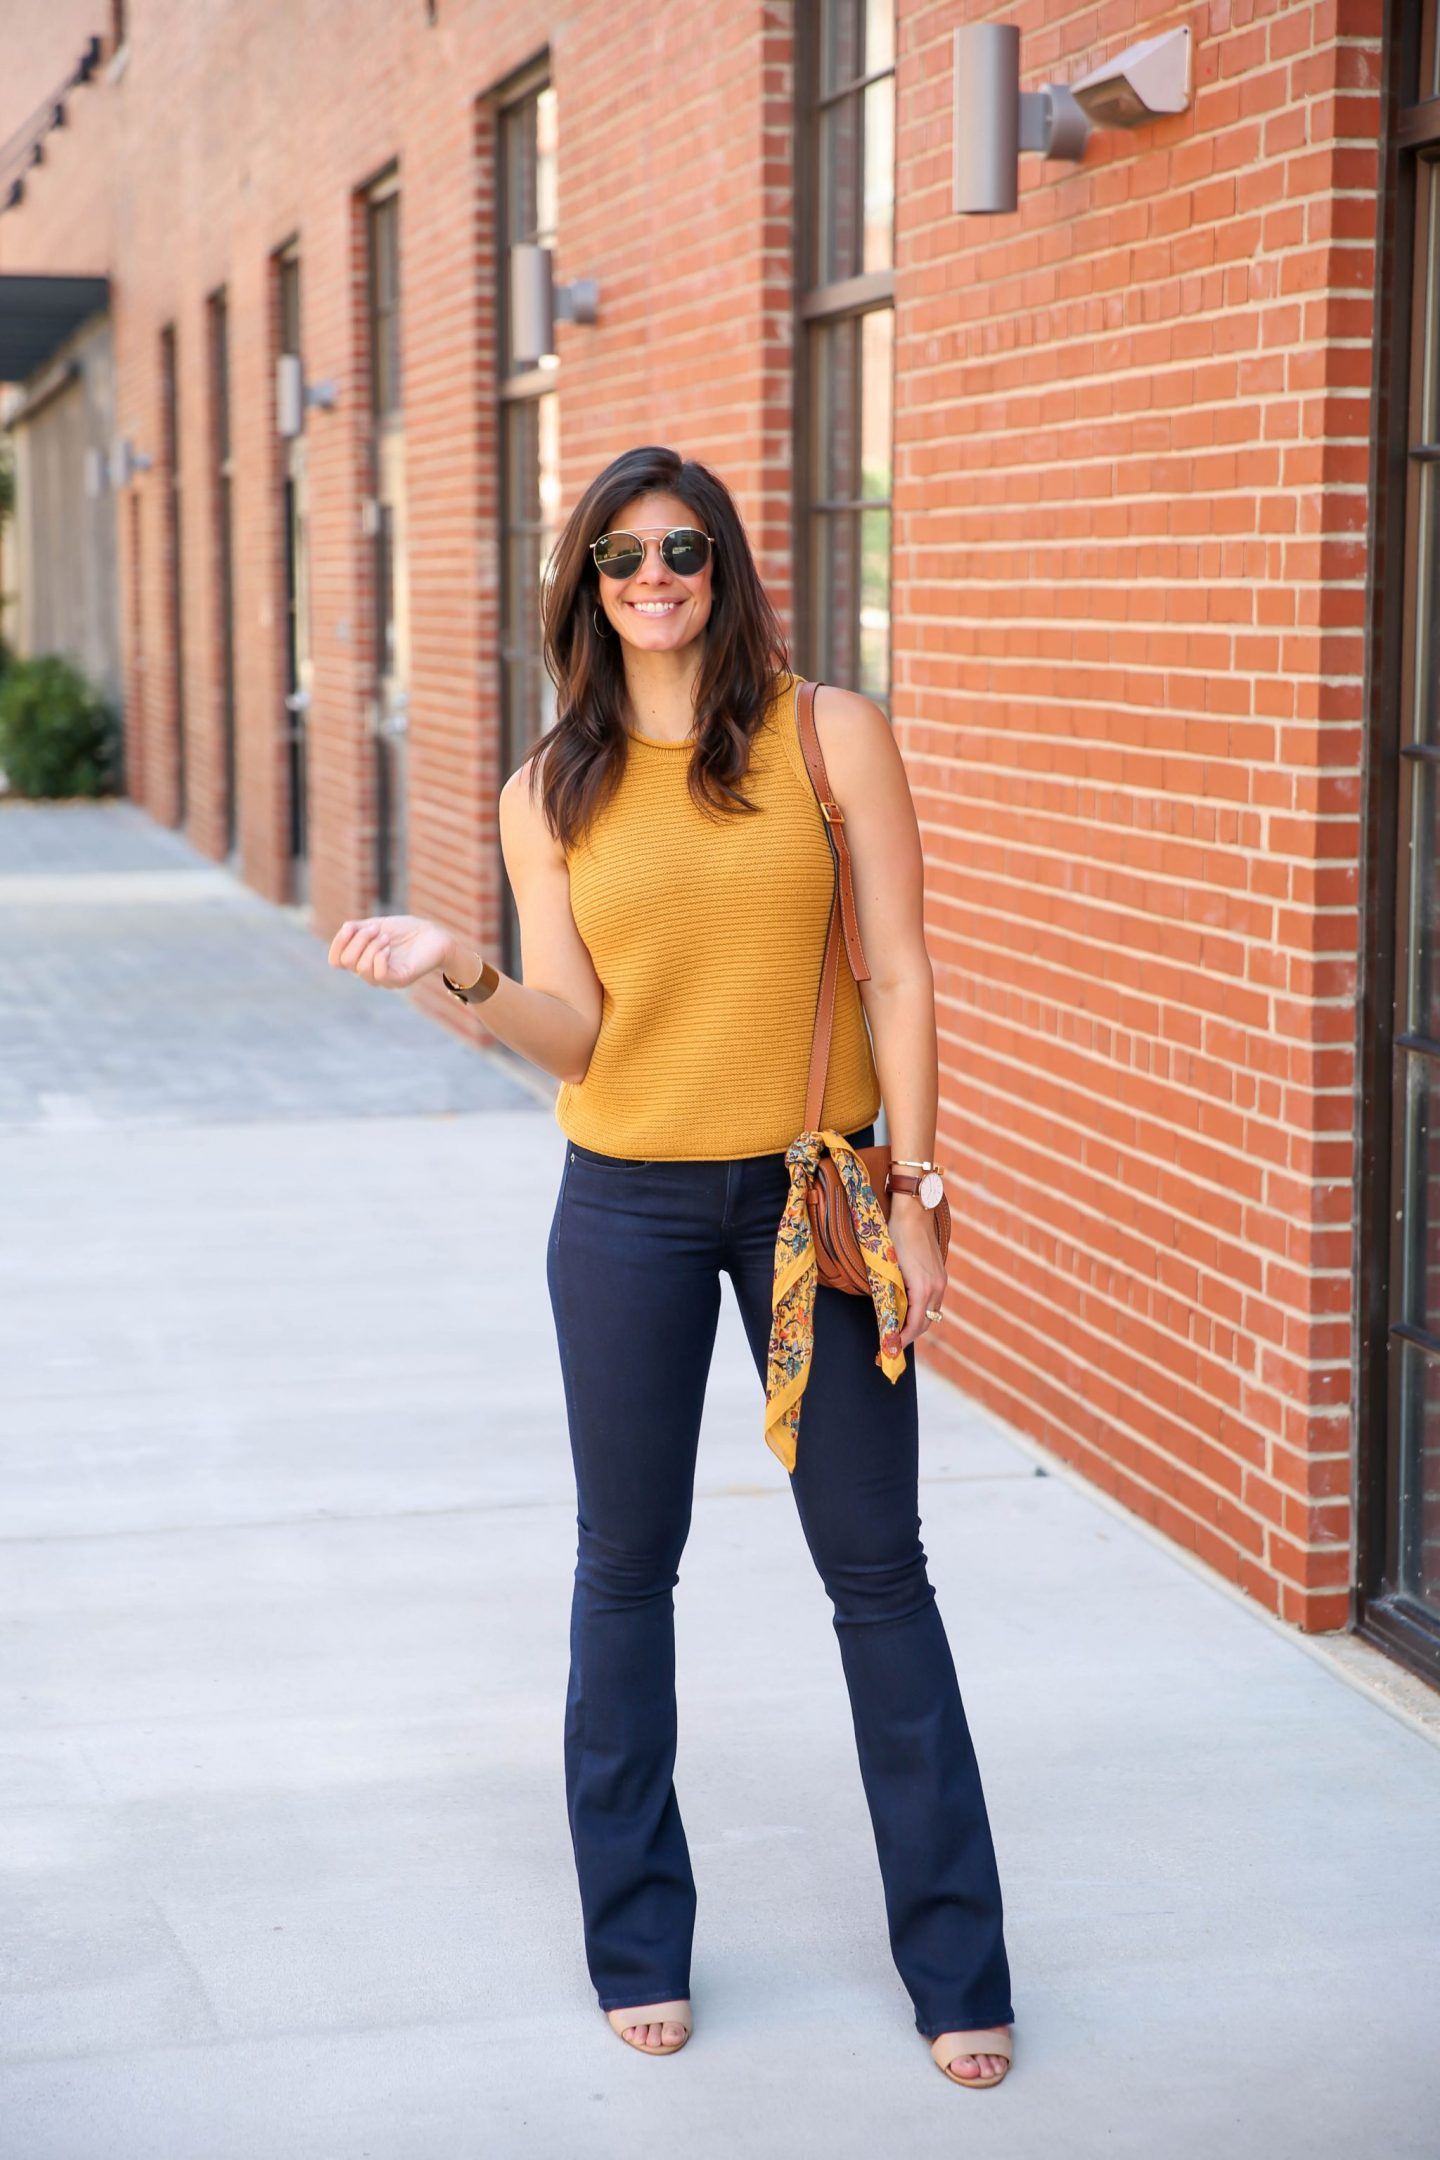 70s style for fall - mustard sweater tank - denim flares - Lauren schwaiger style blog